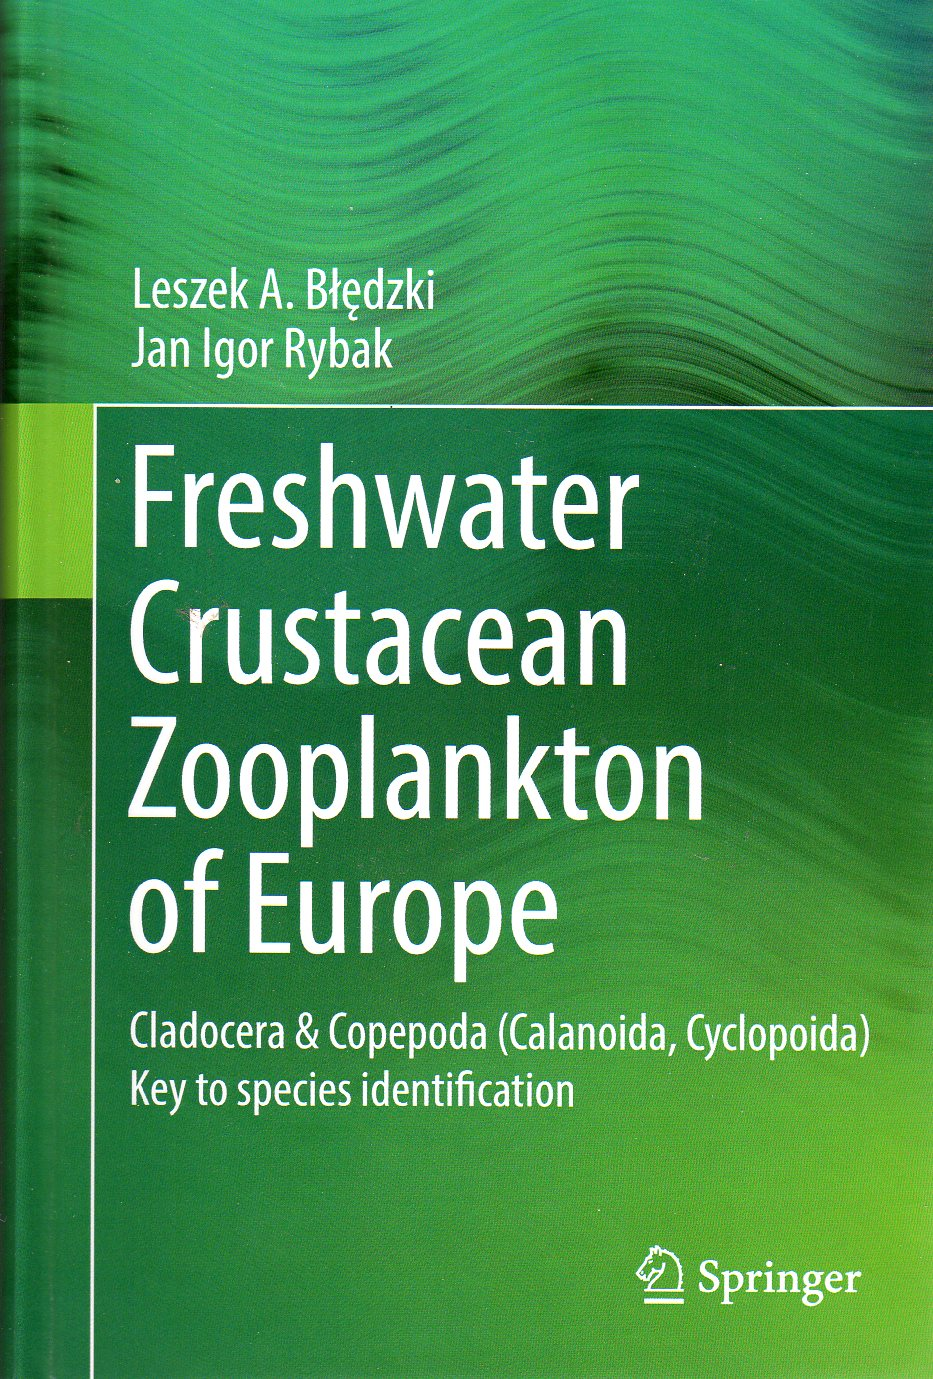 Freshwater crustacean zooplankton of Europe. Cladocera & Copepo­da (Calanoida, Cyclopoida). Key to species identification, with notes on ecology, distribution, methods and introduction to data analysis